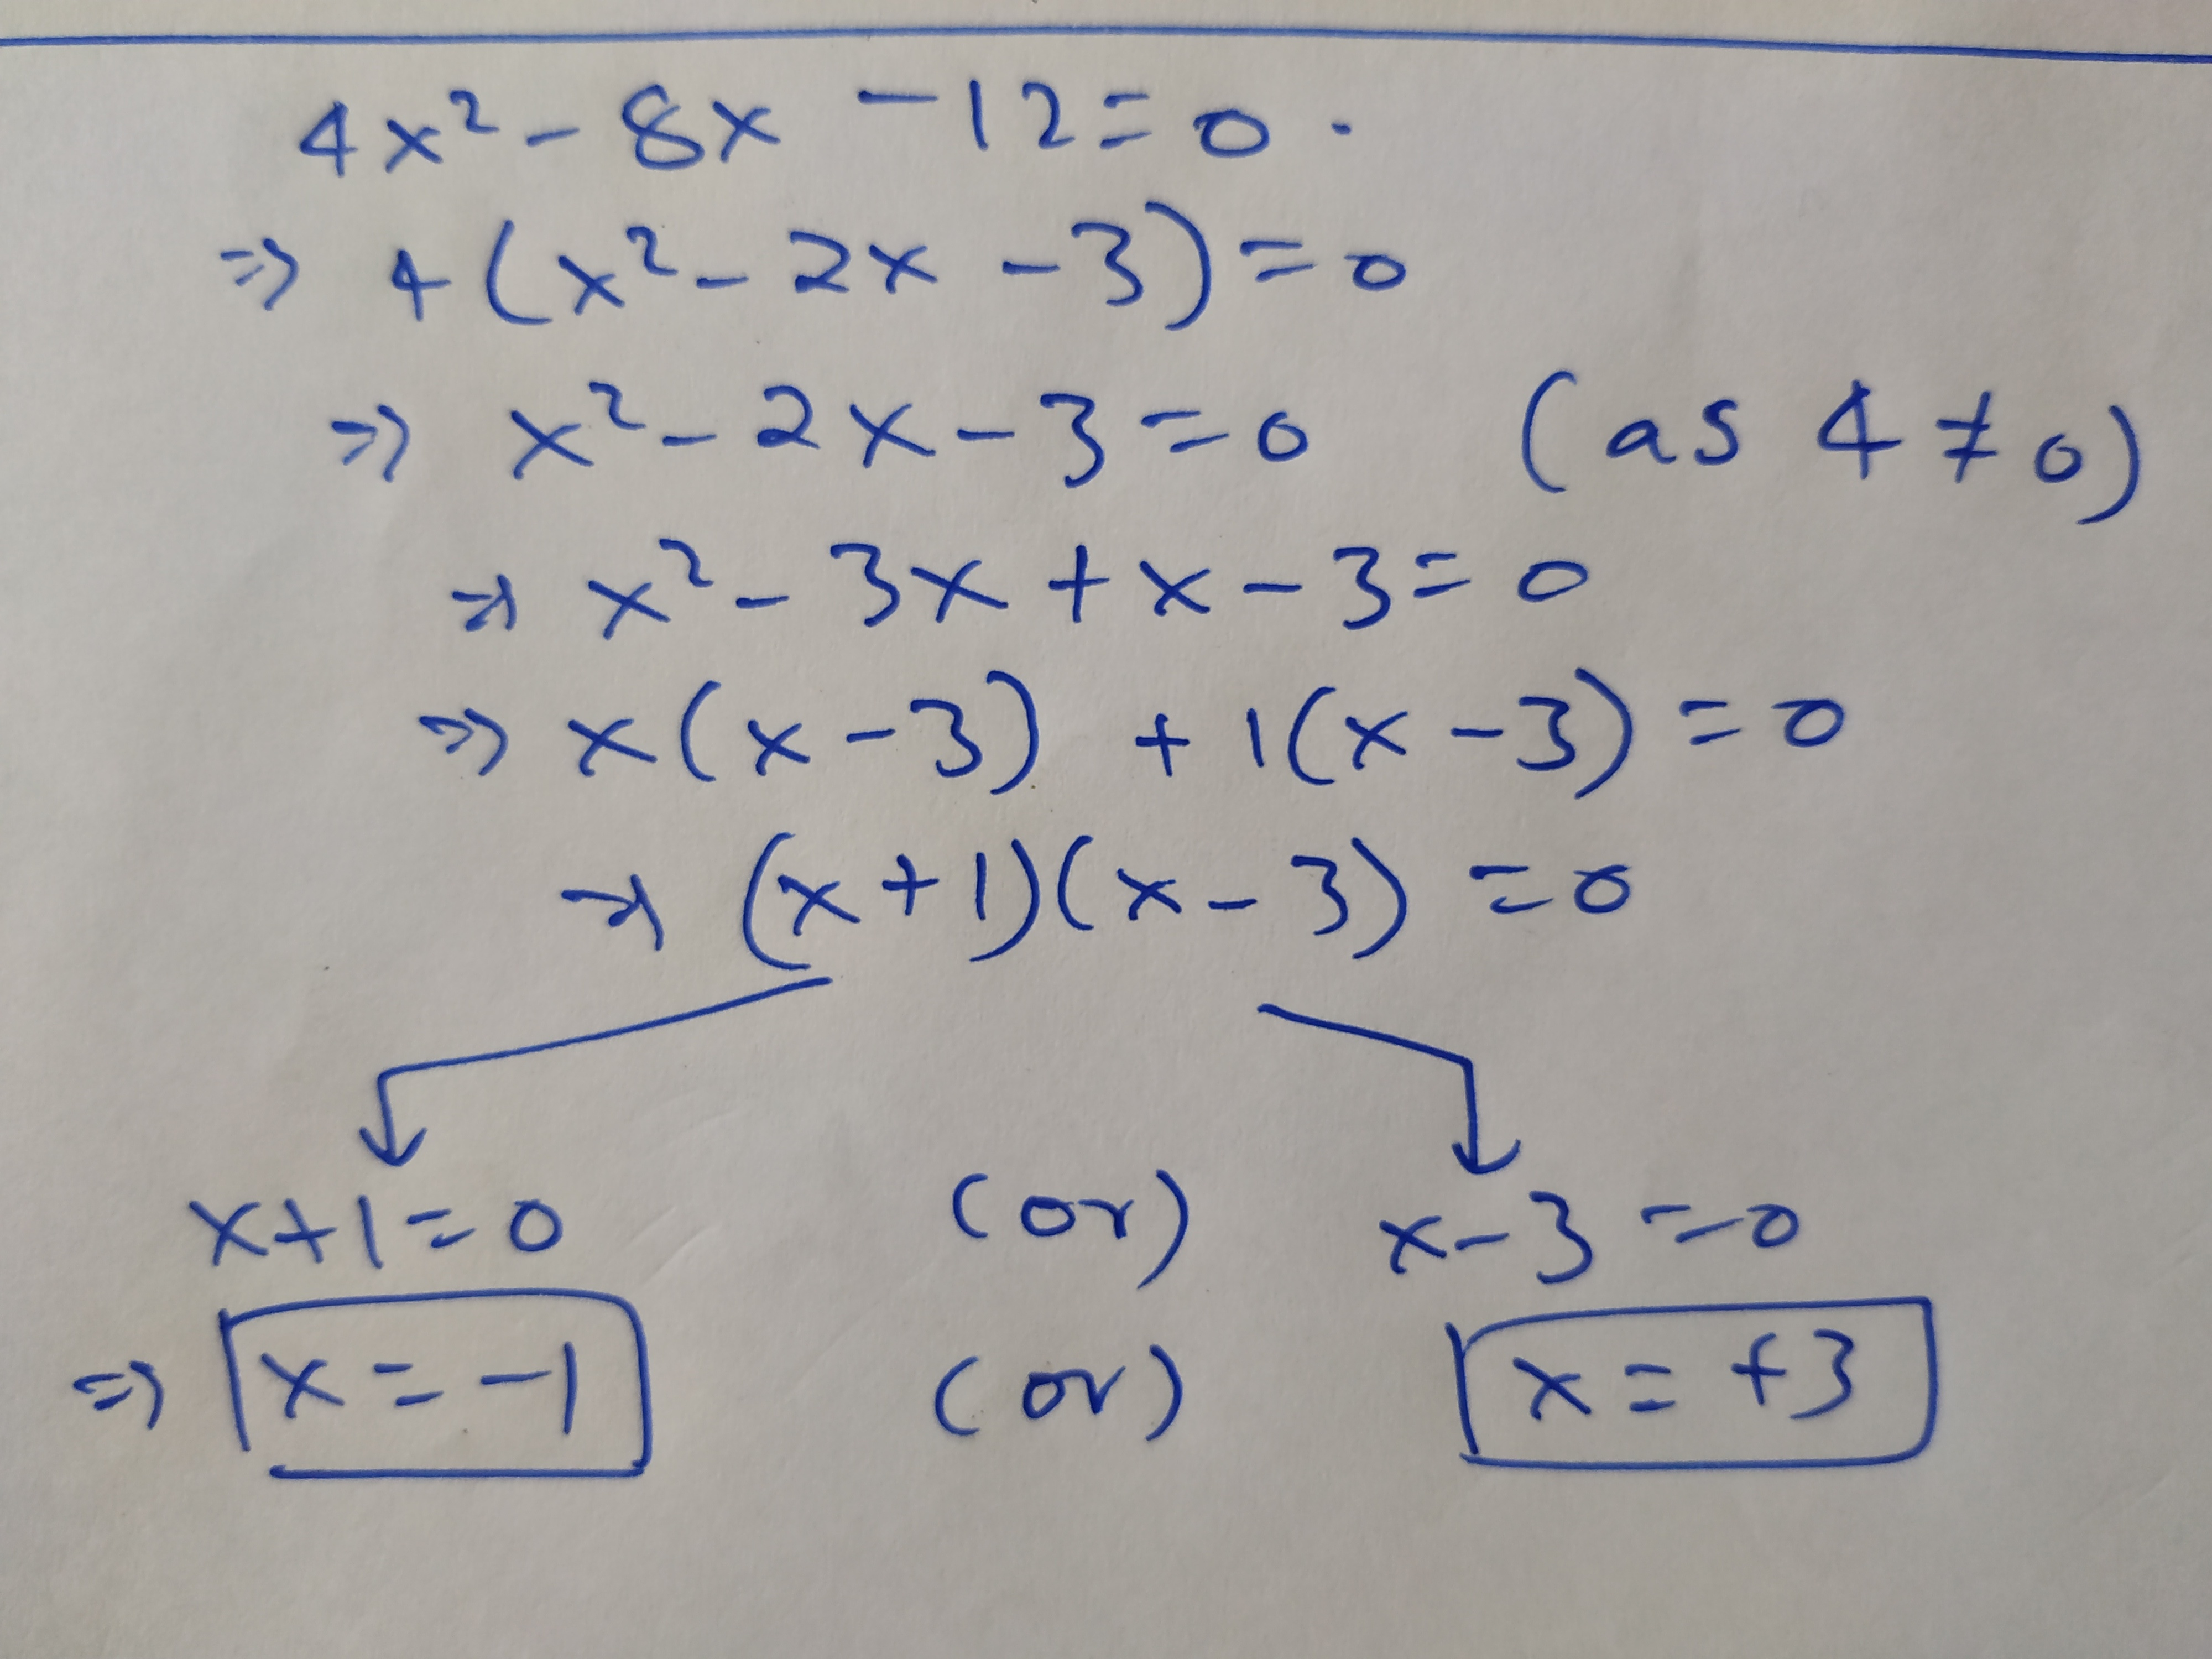 what are the solutions of the quadratic equation math 4x 2 8x 12 0 math quora 4x 2 8x 12 0 math quora